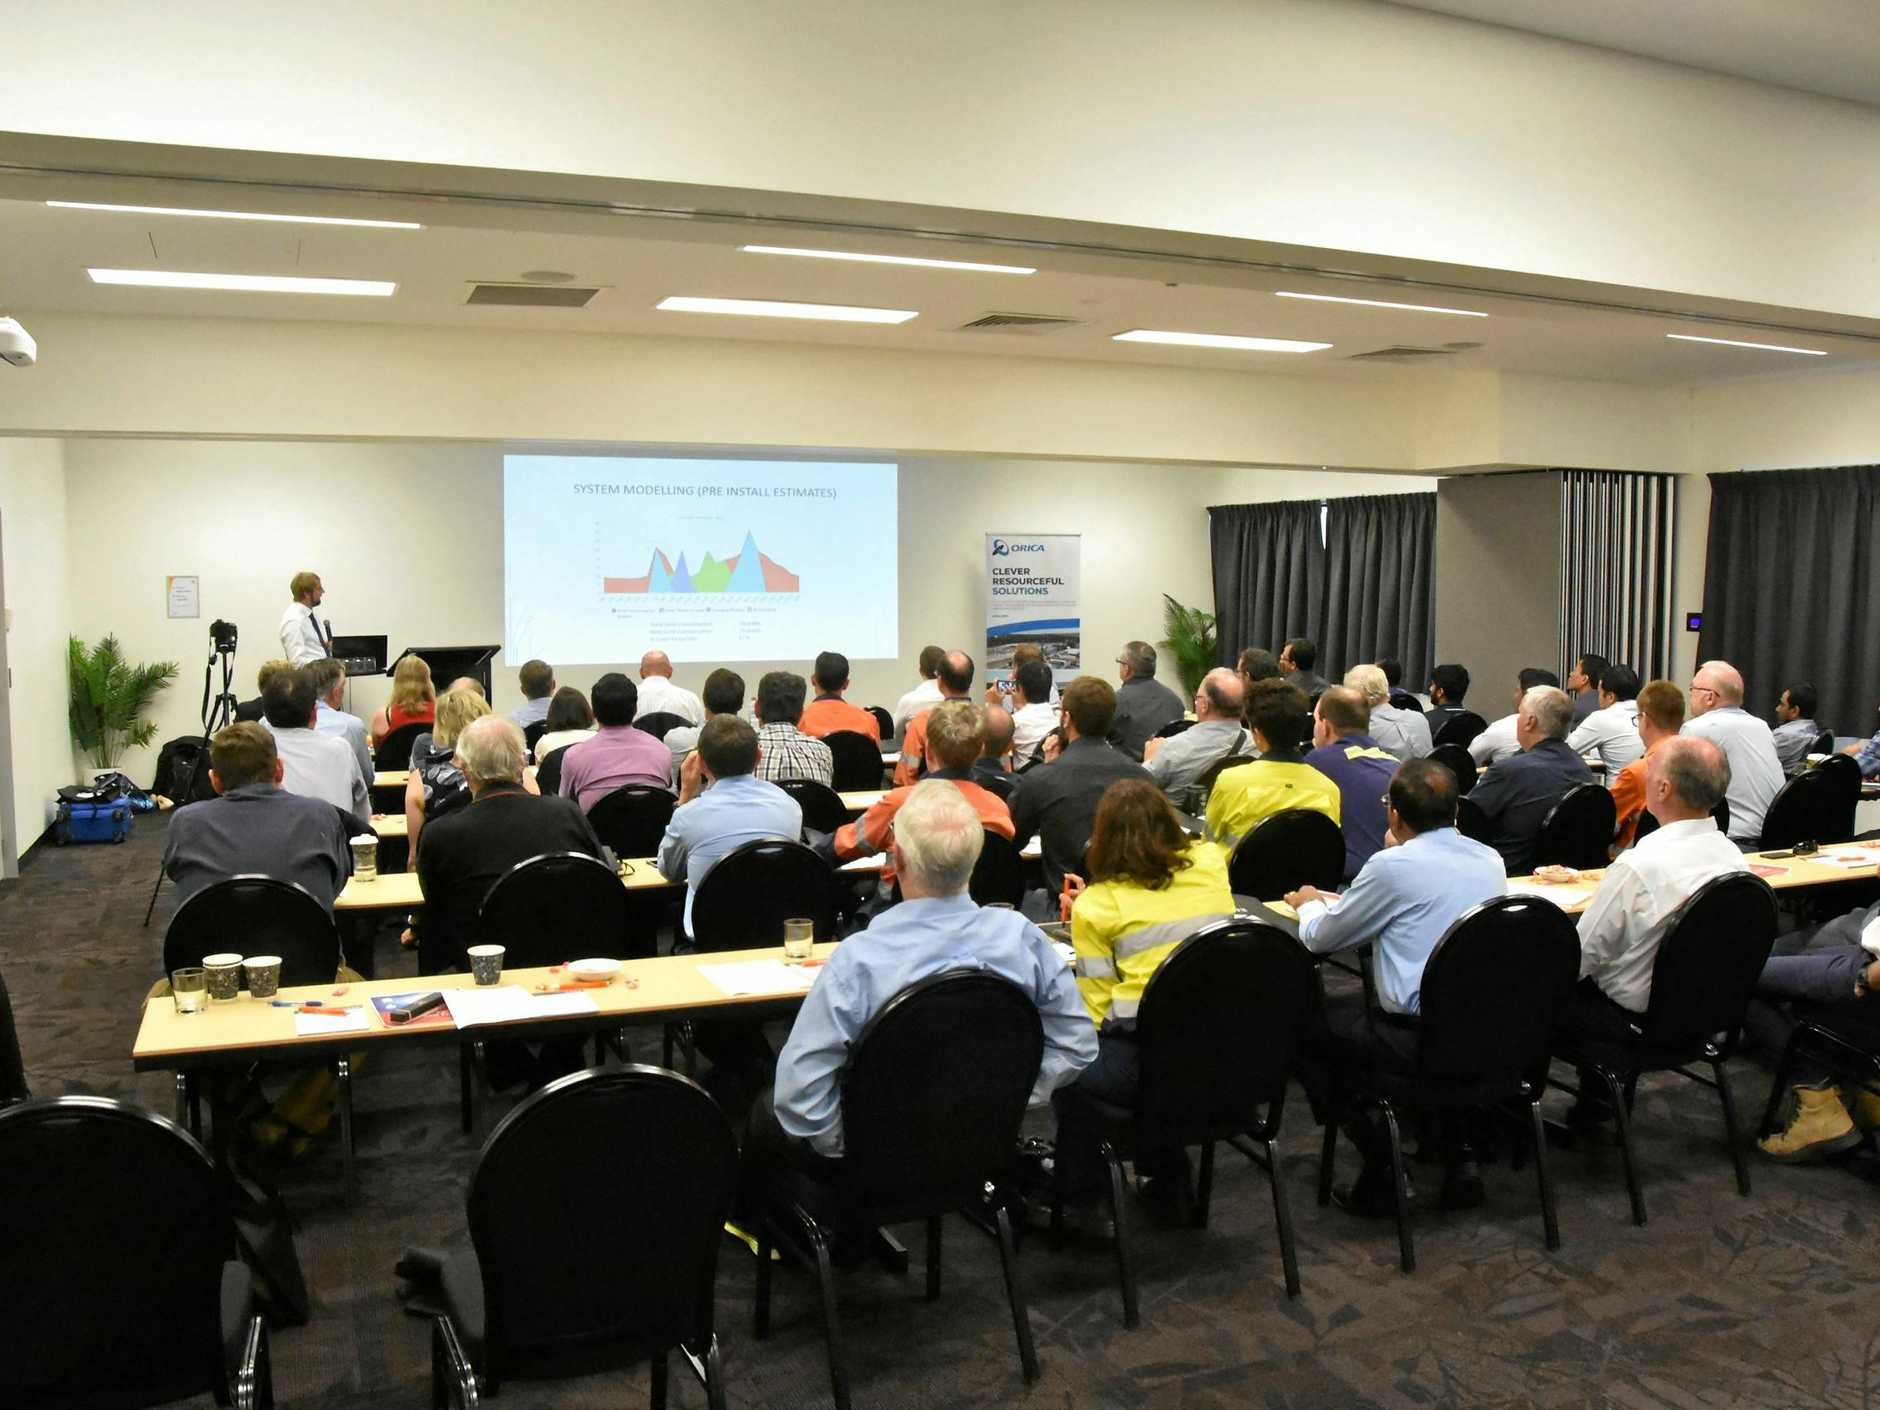 Engineers Australia - Central Regional Forum on energy opportunities in Central Queensland and future energy policy at the Gladstone Entertainment Convention Centre.